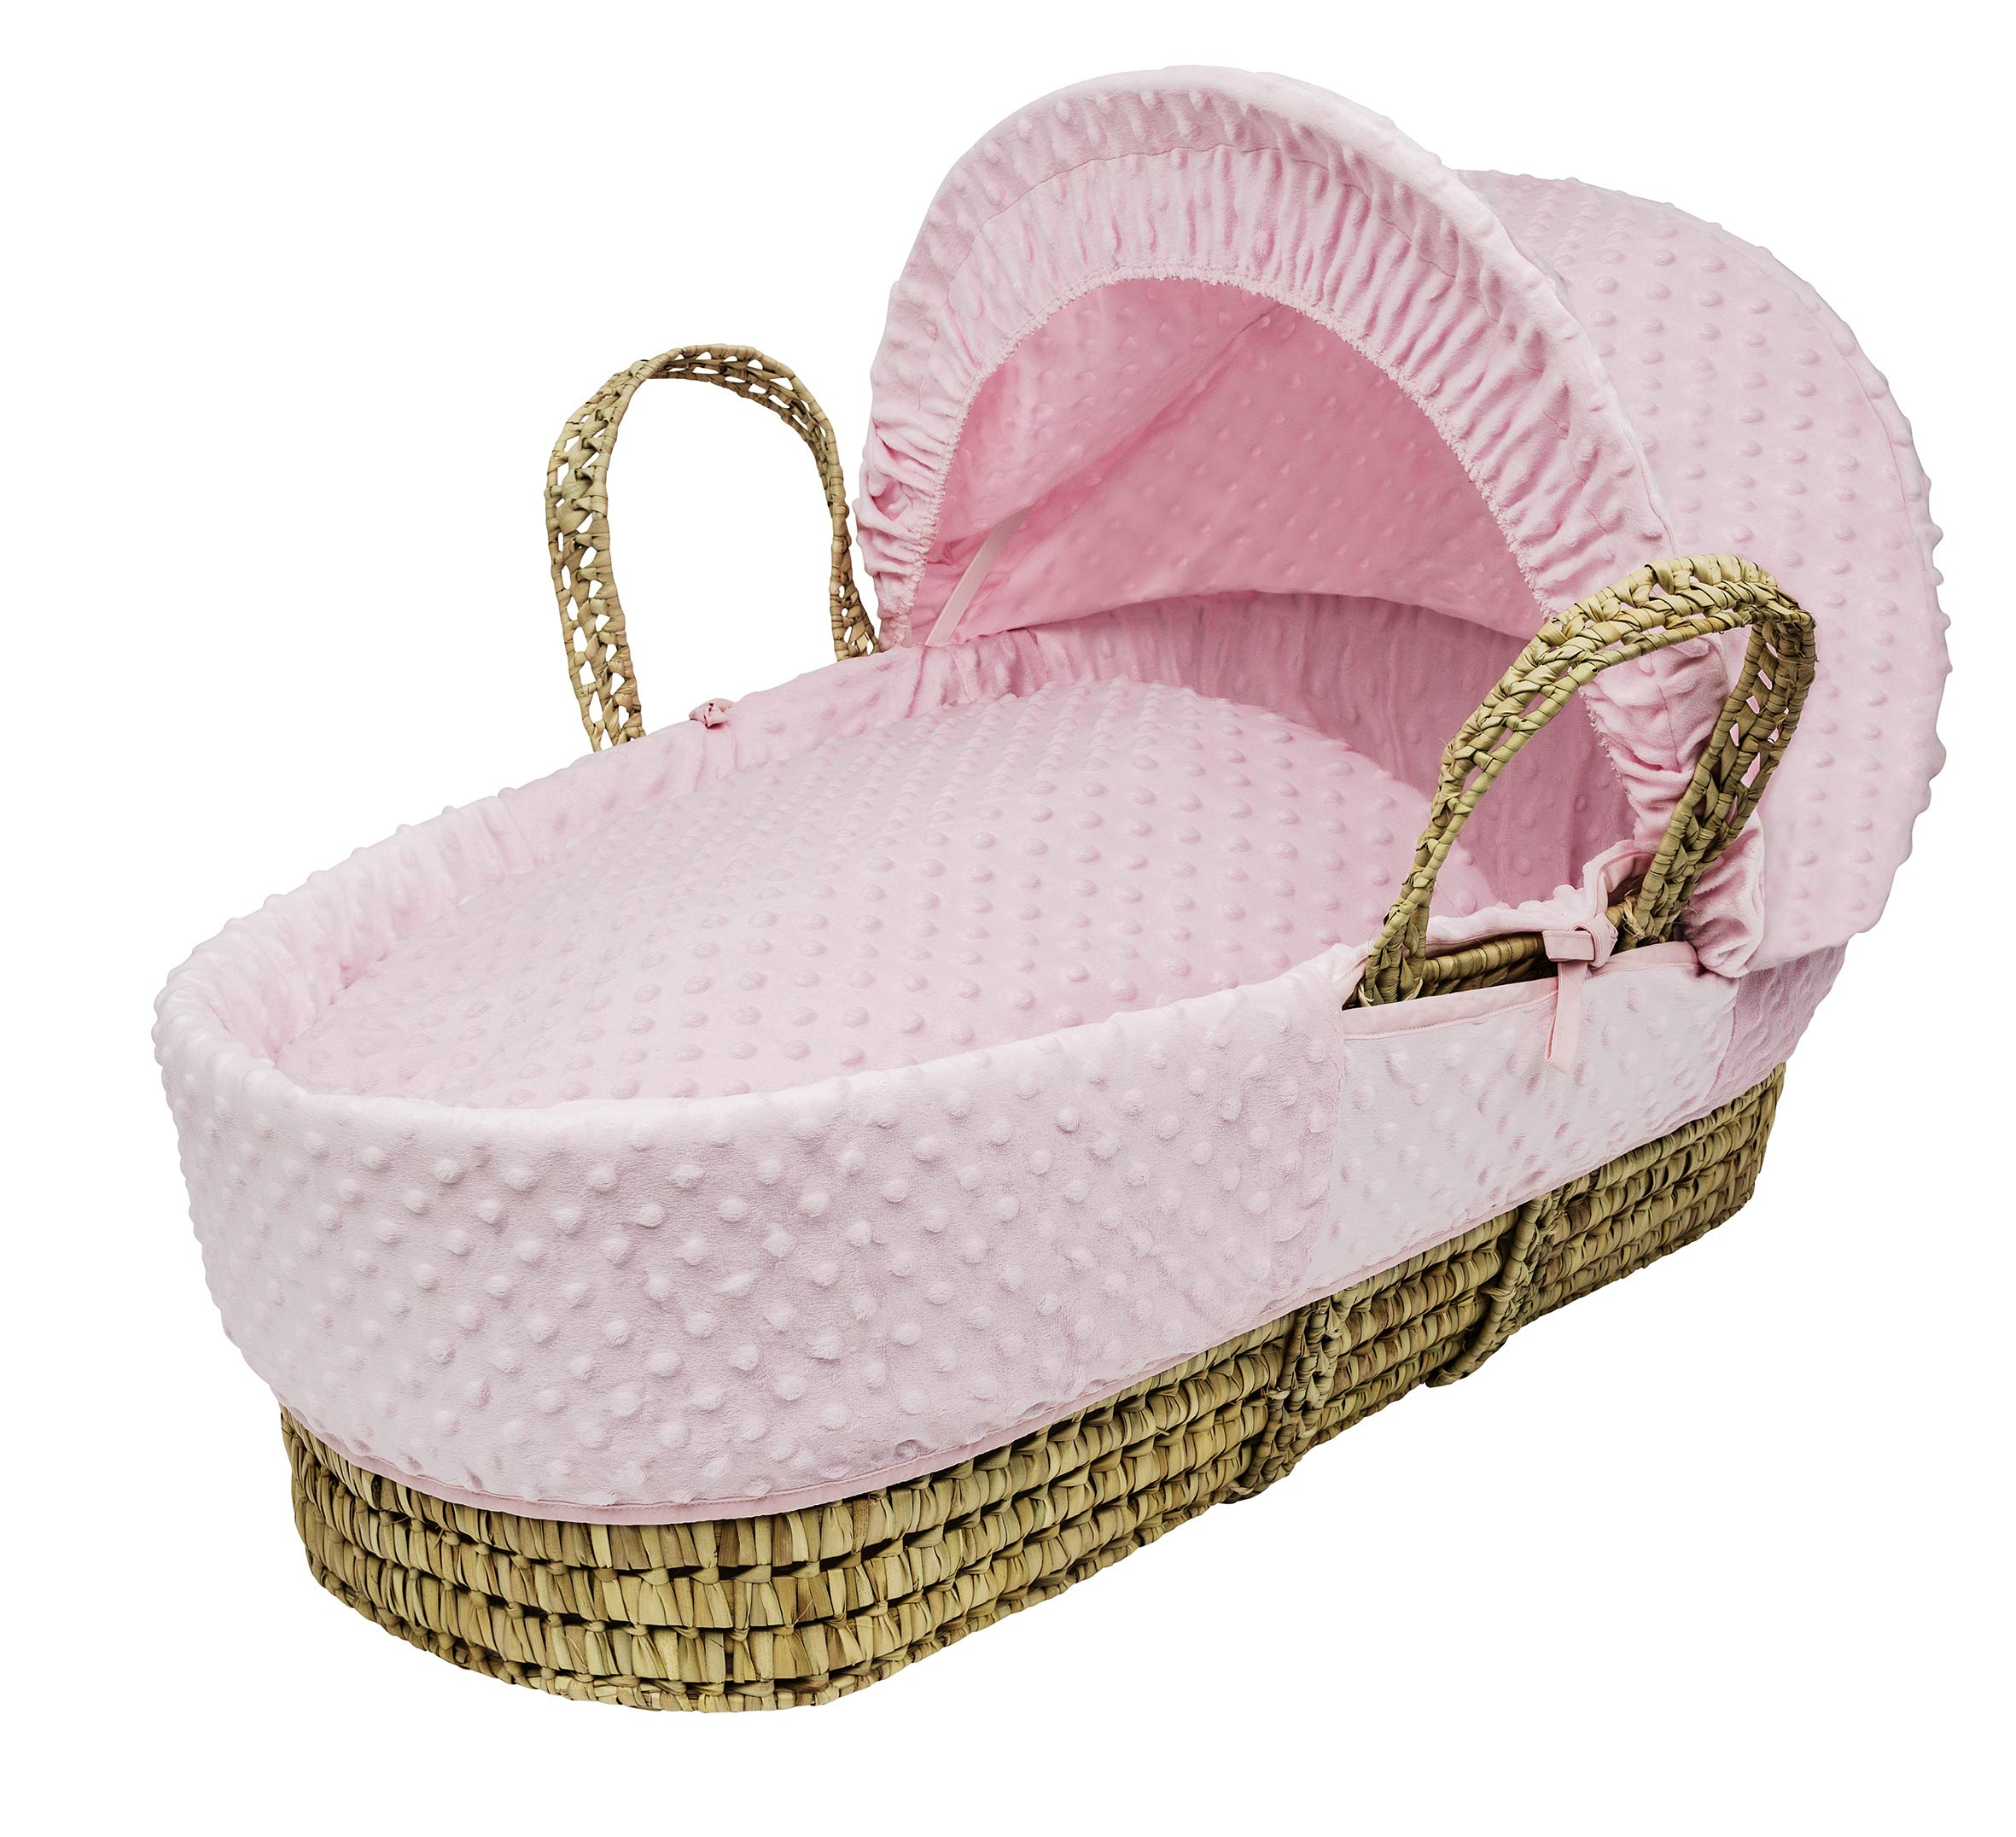 Pink Dimple Moses Basket Dressings only(Basket not included) Elegant Baby Dressings For Moses Baskets Includes Padding,Quilt, Liner,Fabric Hood Basket and Mattress and Hood bars are NOT included 2